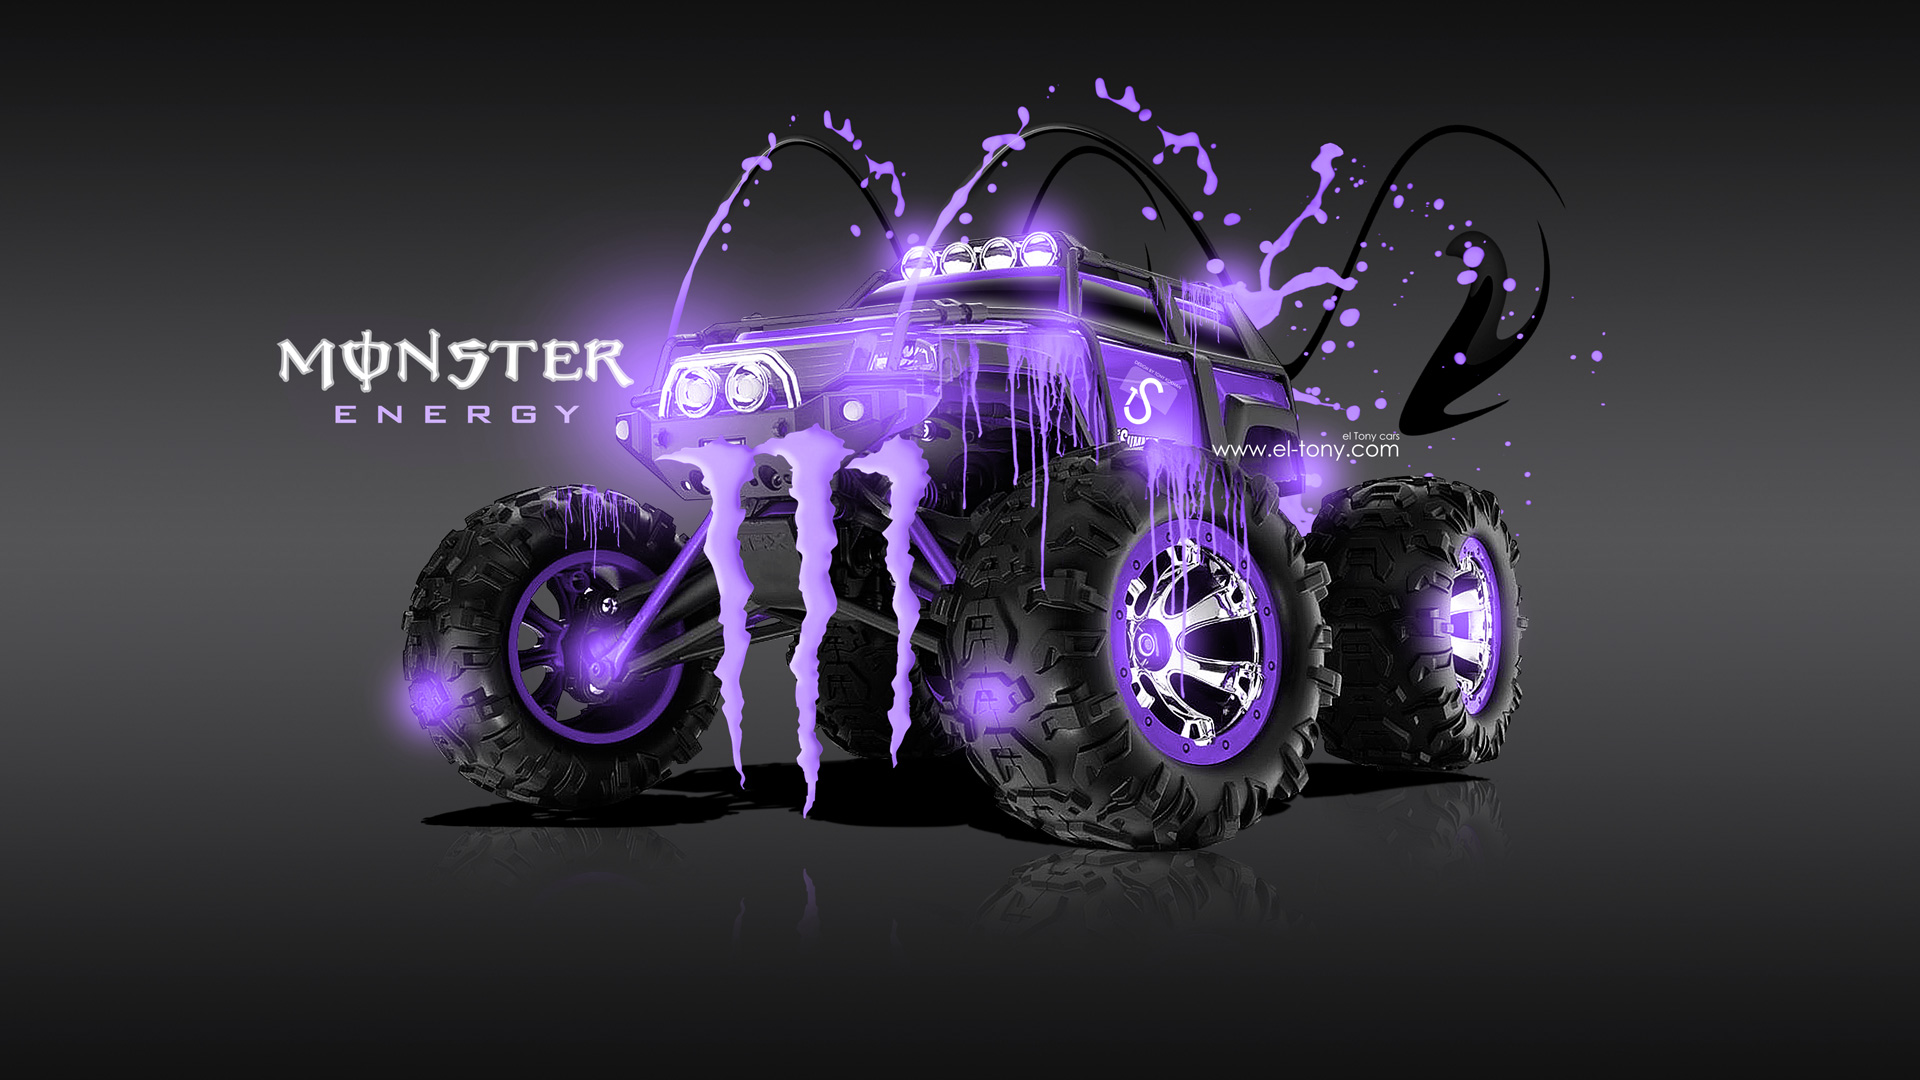 Free full monster x 3d fucks pic